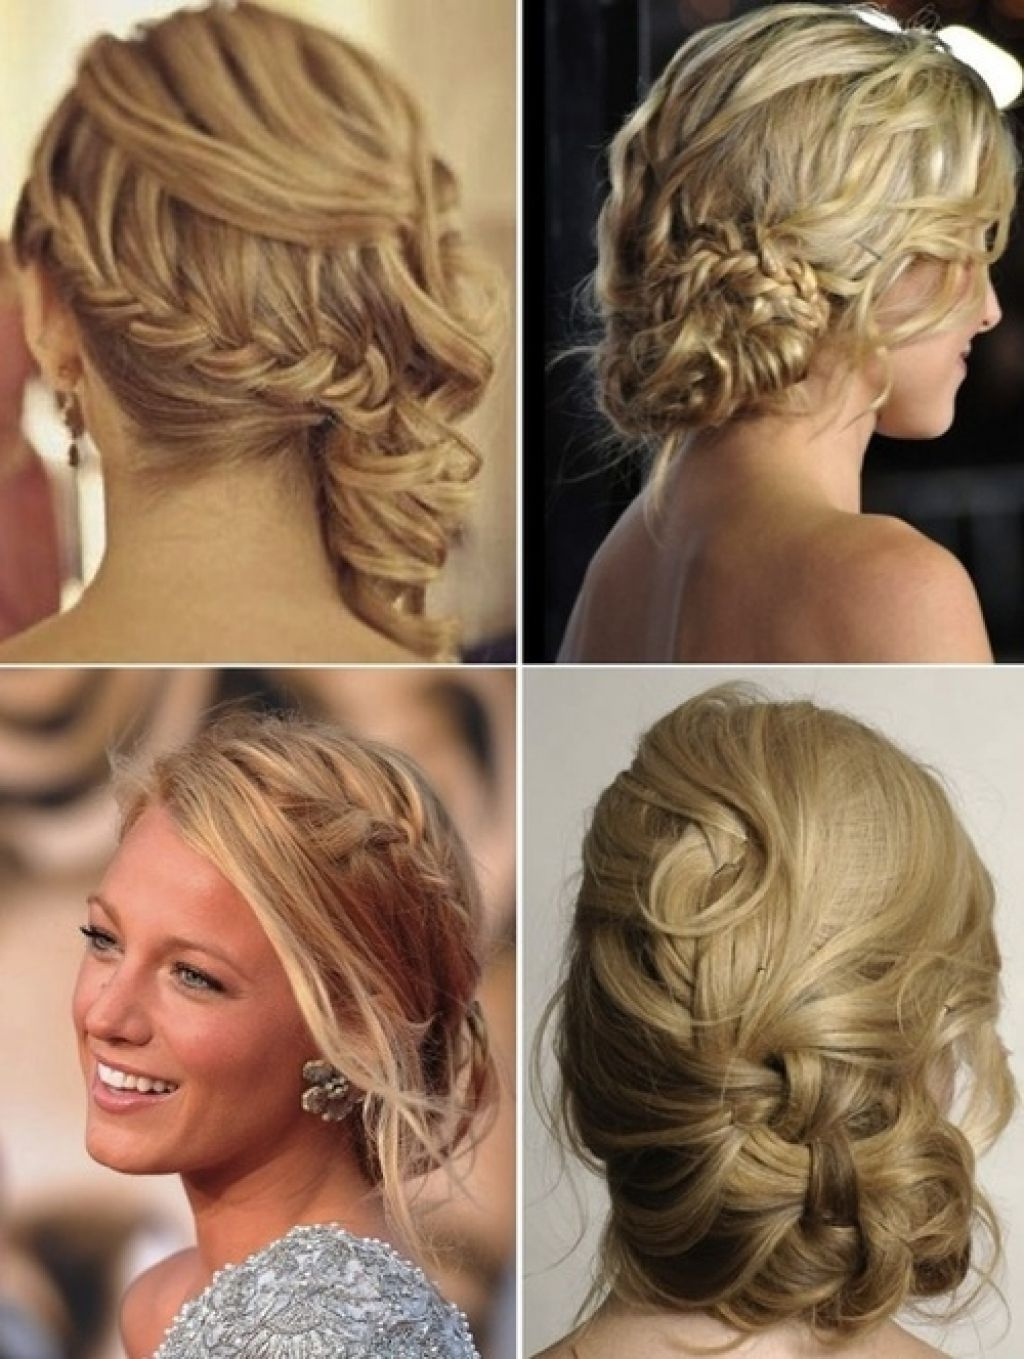 Fashionable Wedding Easy Hairstyles For Medium Hair Pertaining To Casual Wedding Hairstyles For Long Hair – Hairstyle For Women & Man (View 4 of 15)